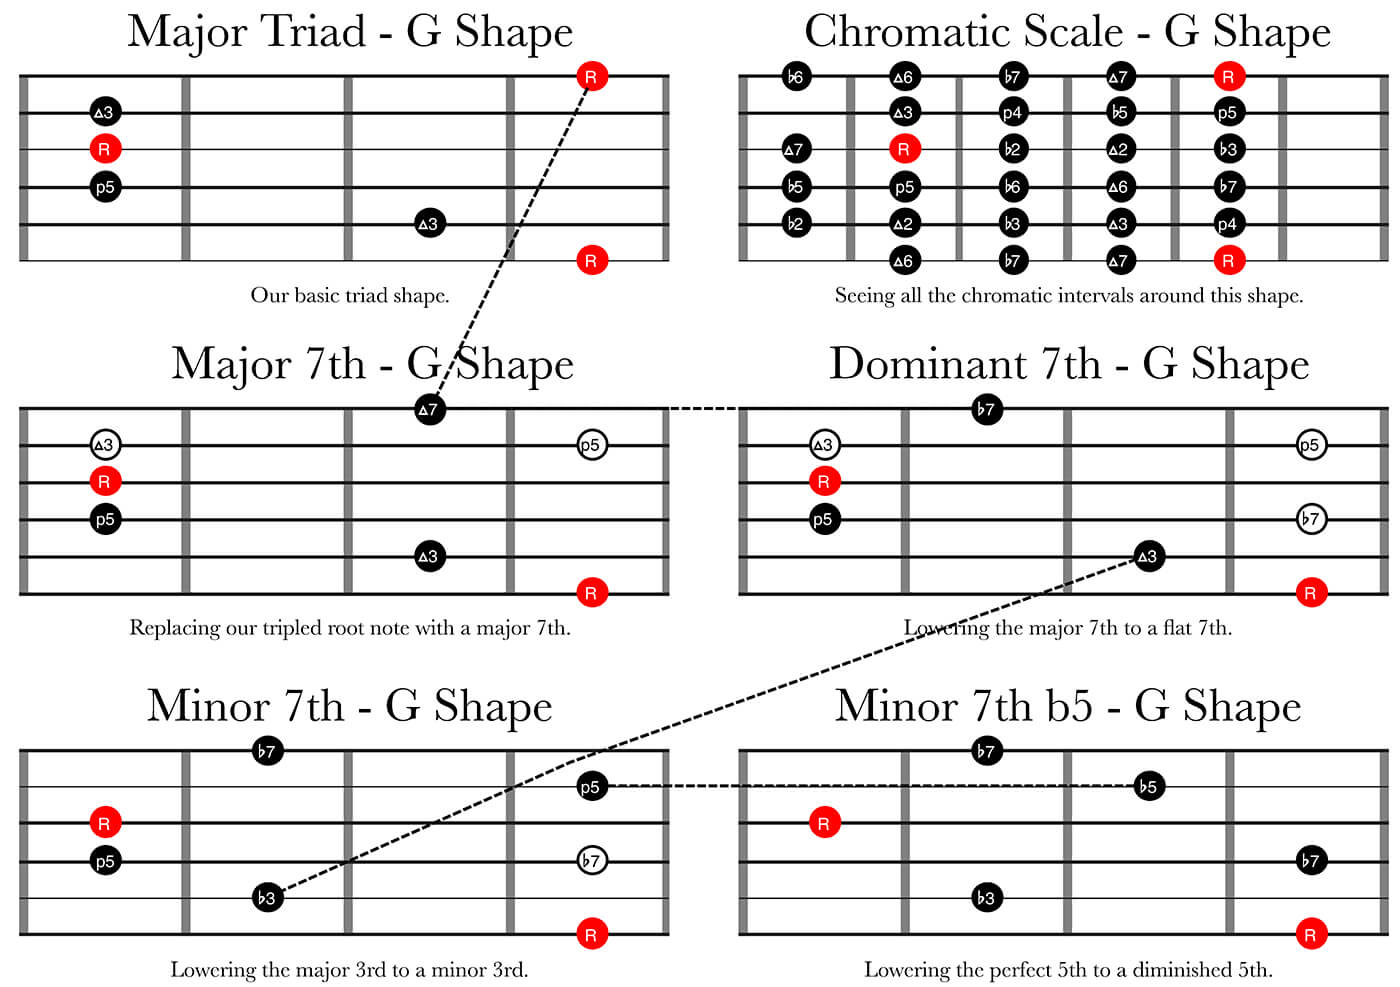 Major Triad Chromatic Scale - 7th Chord Types From the Major